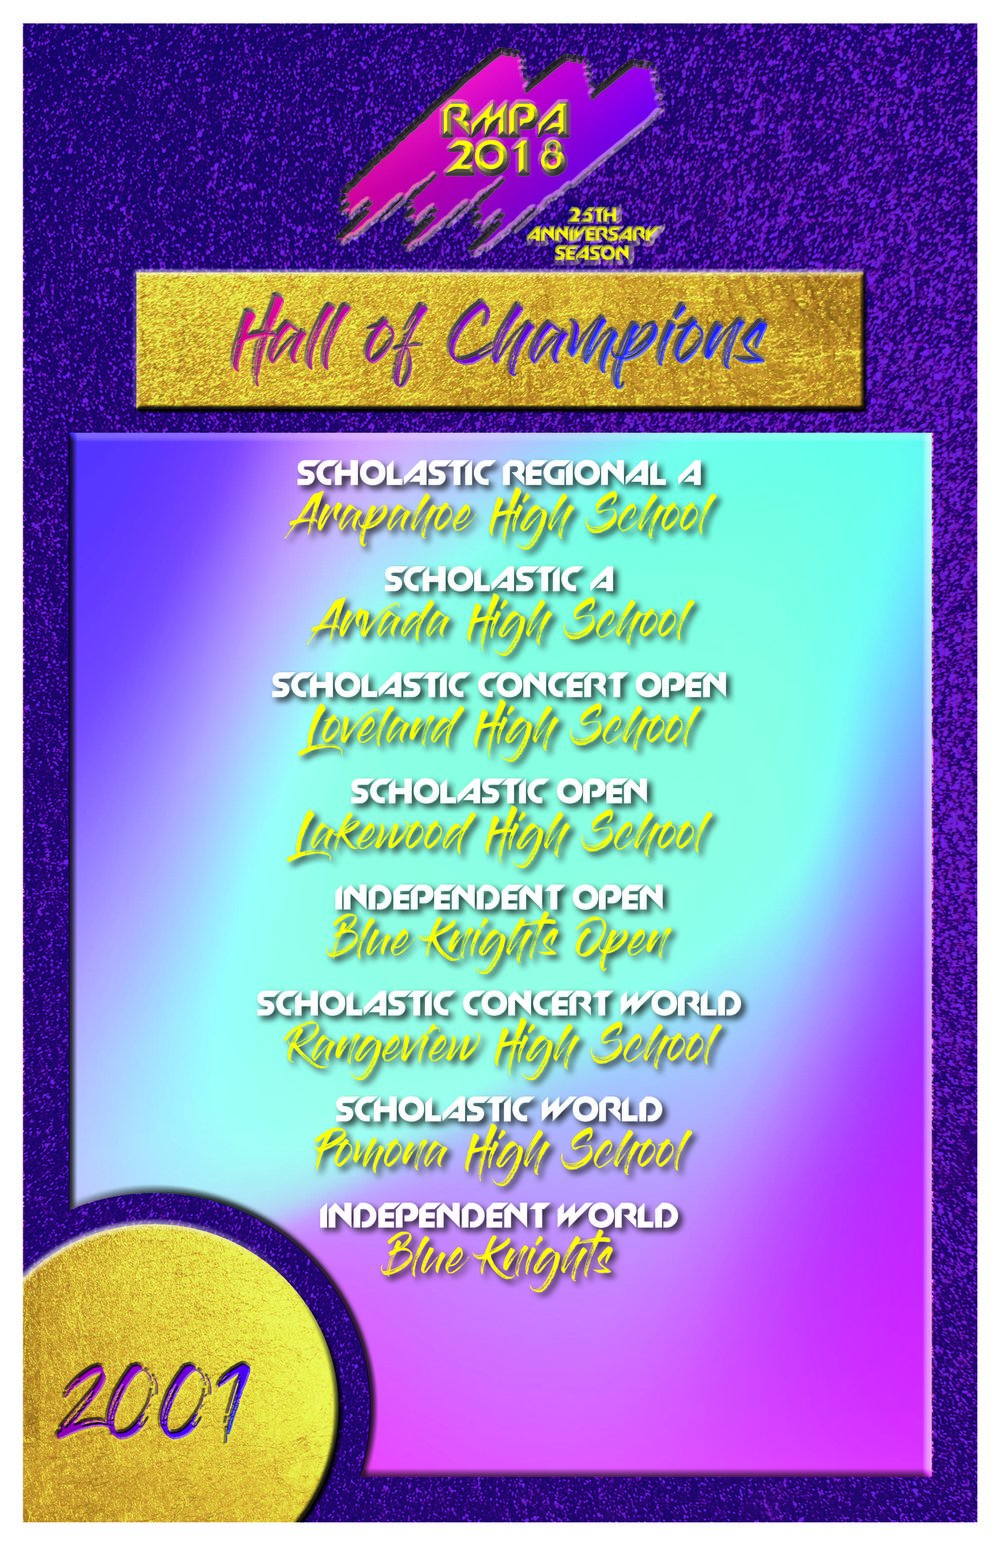 Hall of Champions Posters_Page_09.jpg